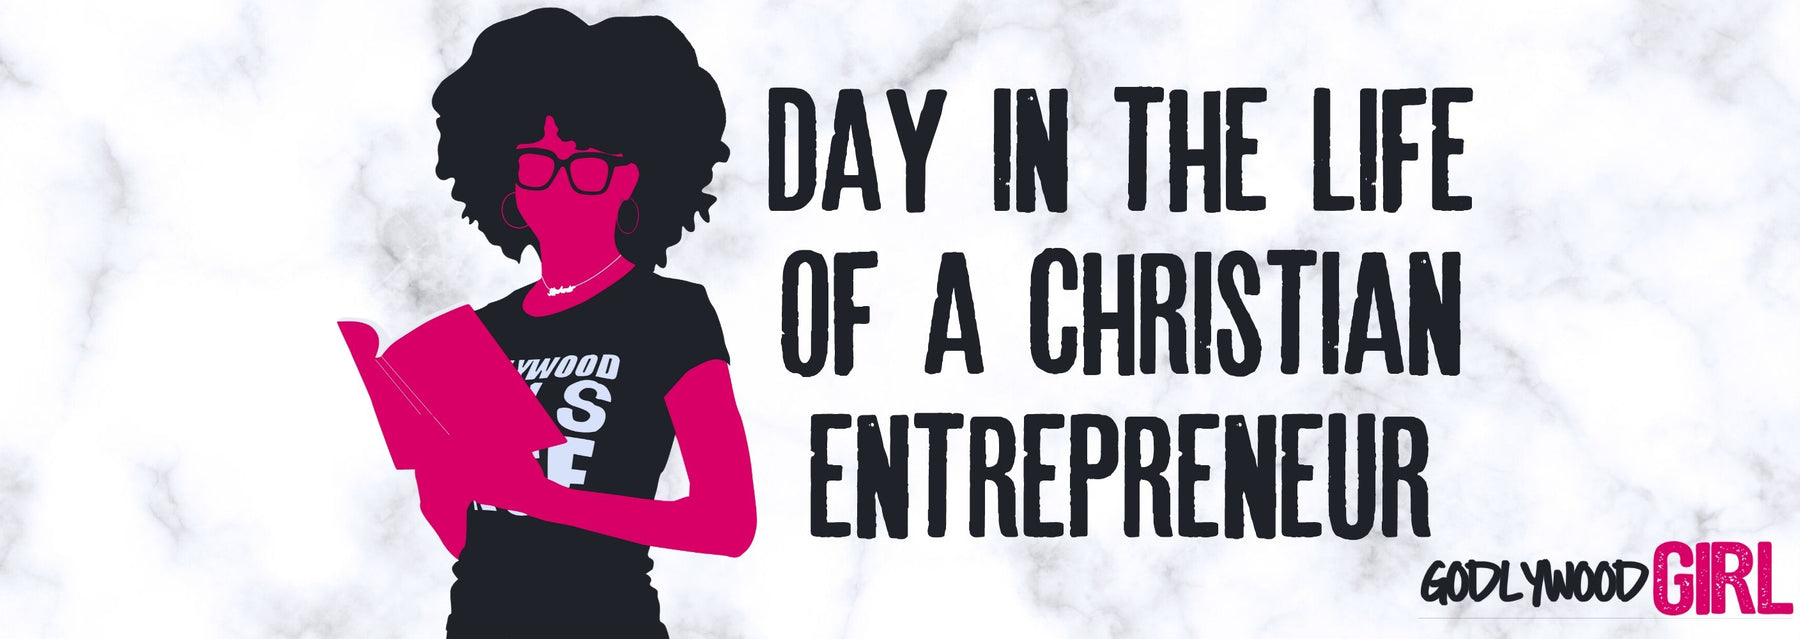 Day In The Life Of A Christian Entrepreneur Ep.27 | Day In the Life Of An Internet Entrepreneur